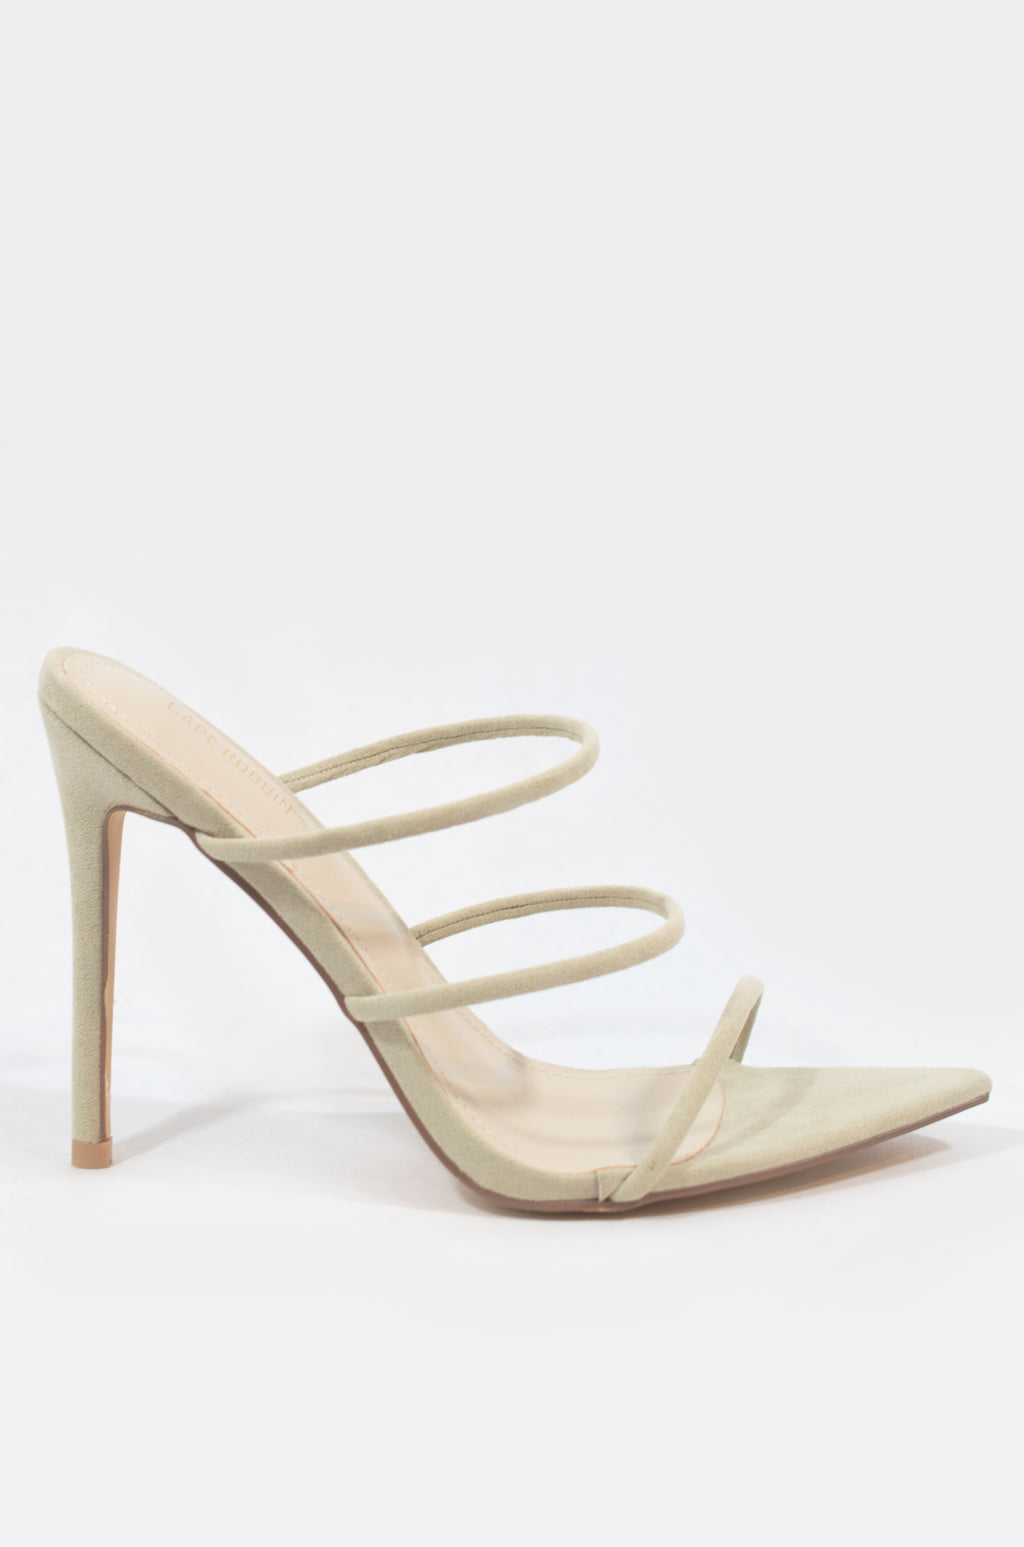 9a10a9526ac2a Unforgettable - Nude Lime Strappy Heels